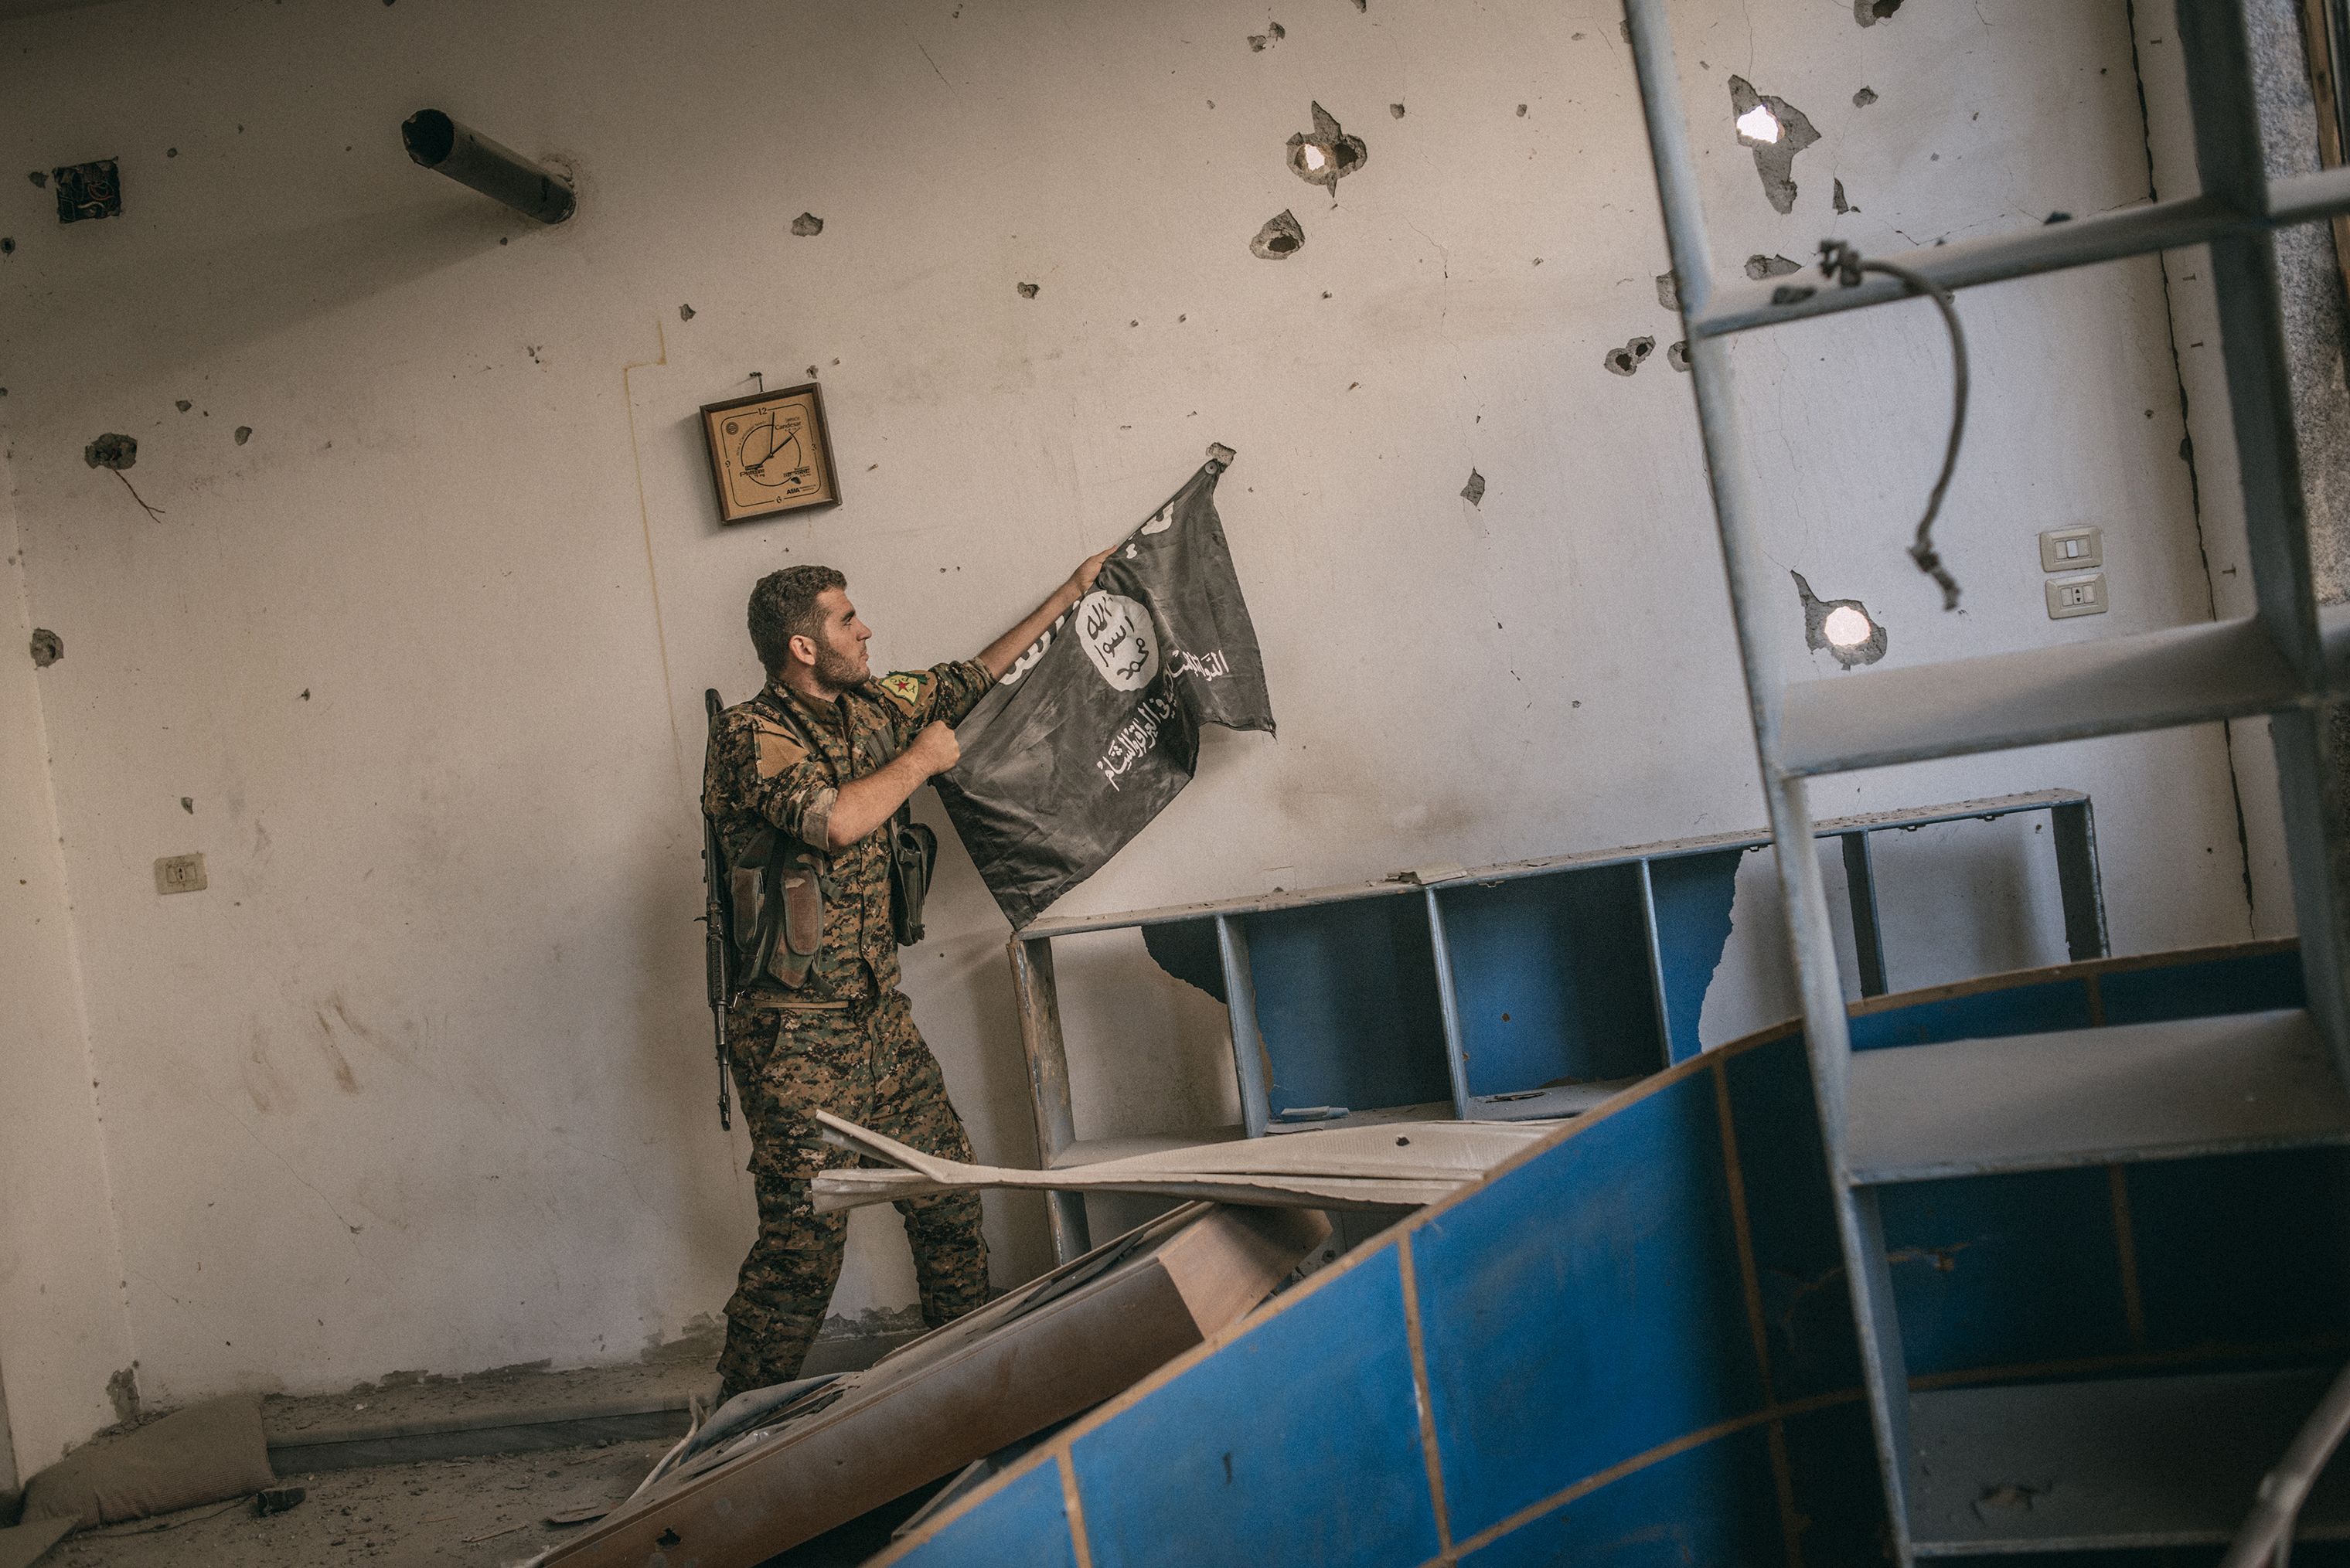 A member of the Syrian Democratic Forces removes an Islamic State flag from a wall on Oct. 18, 2017.